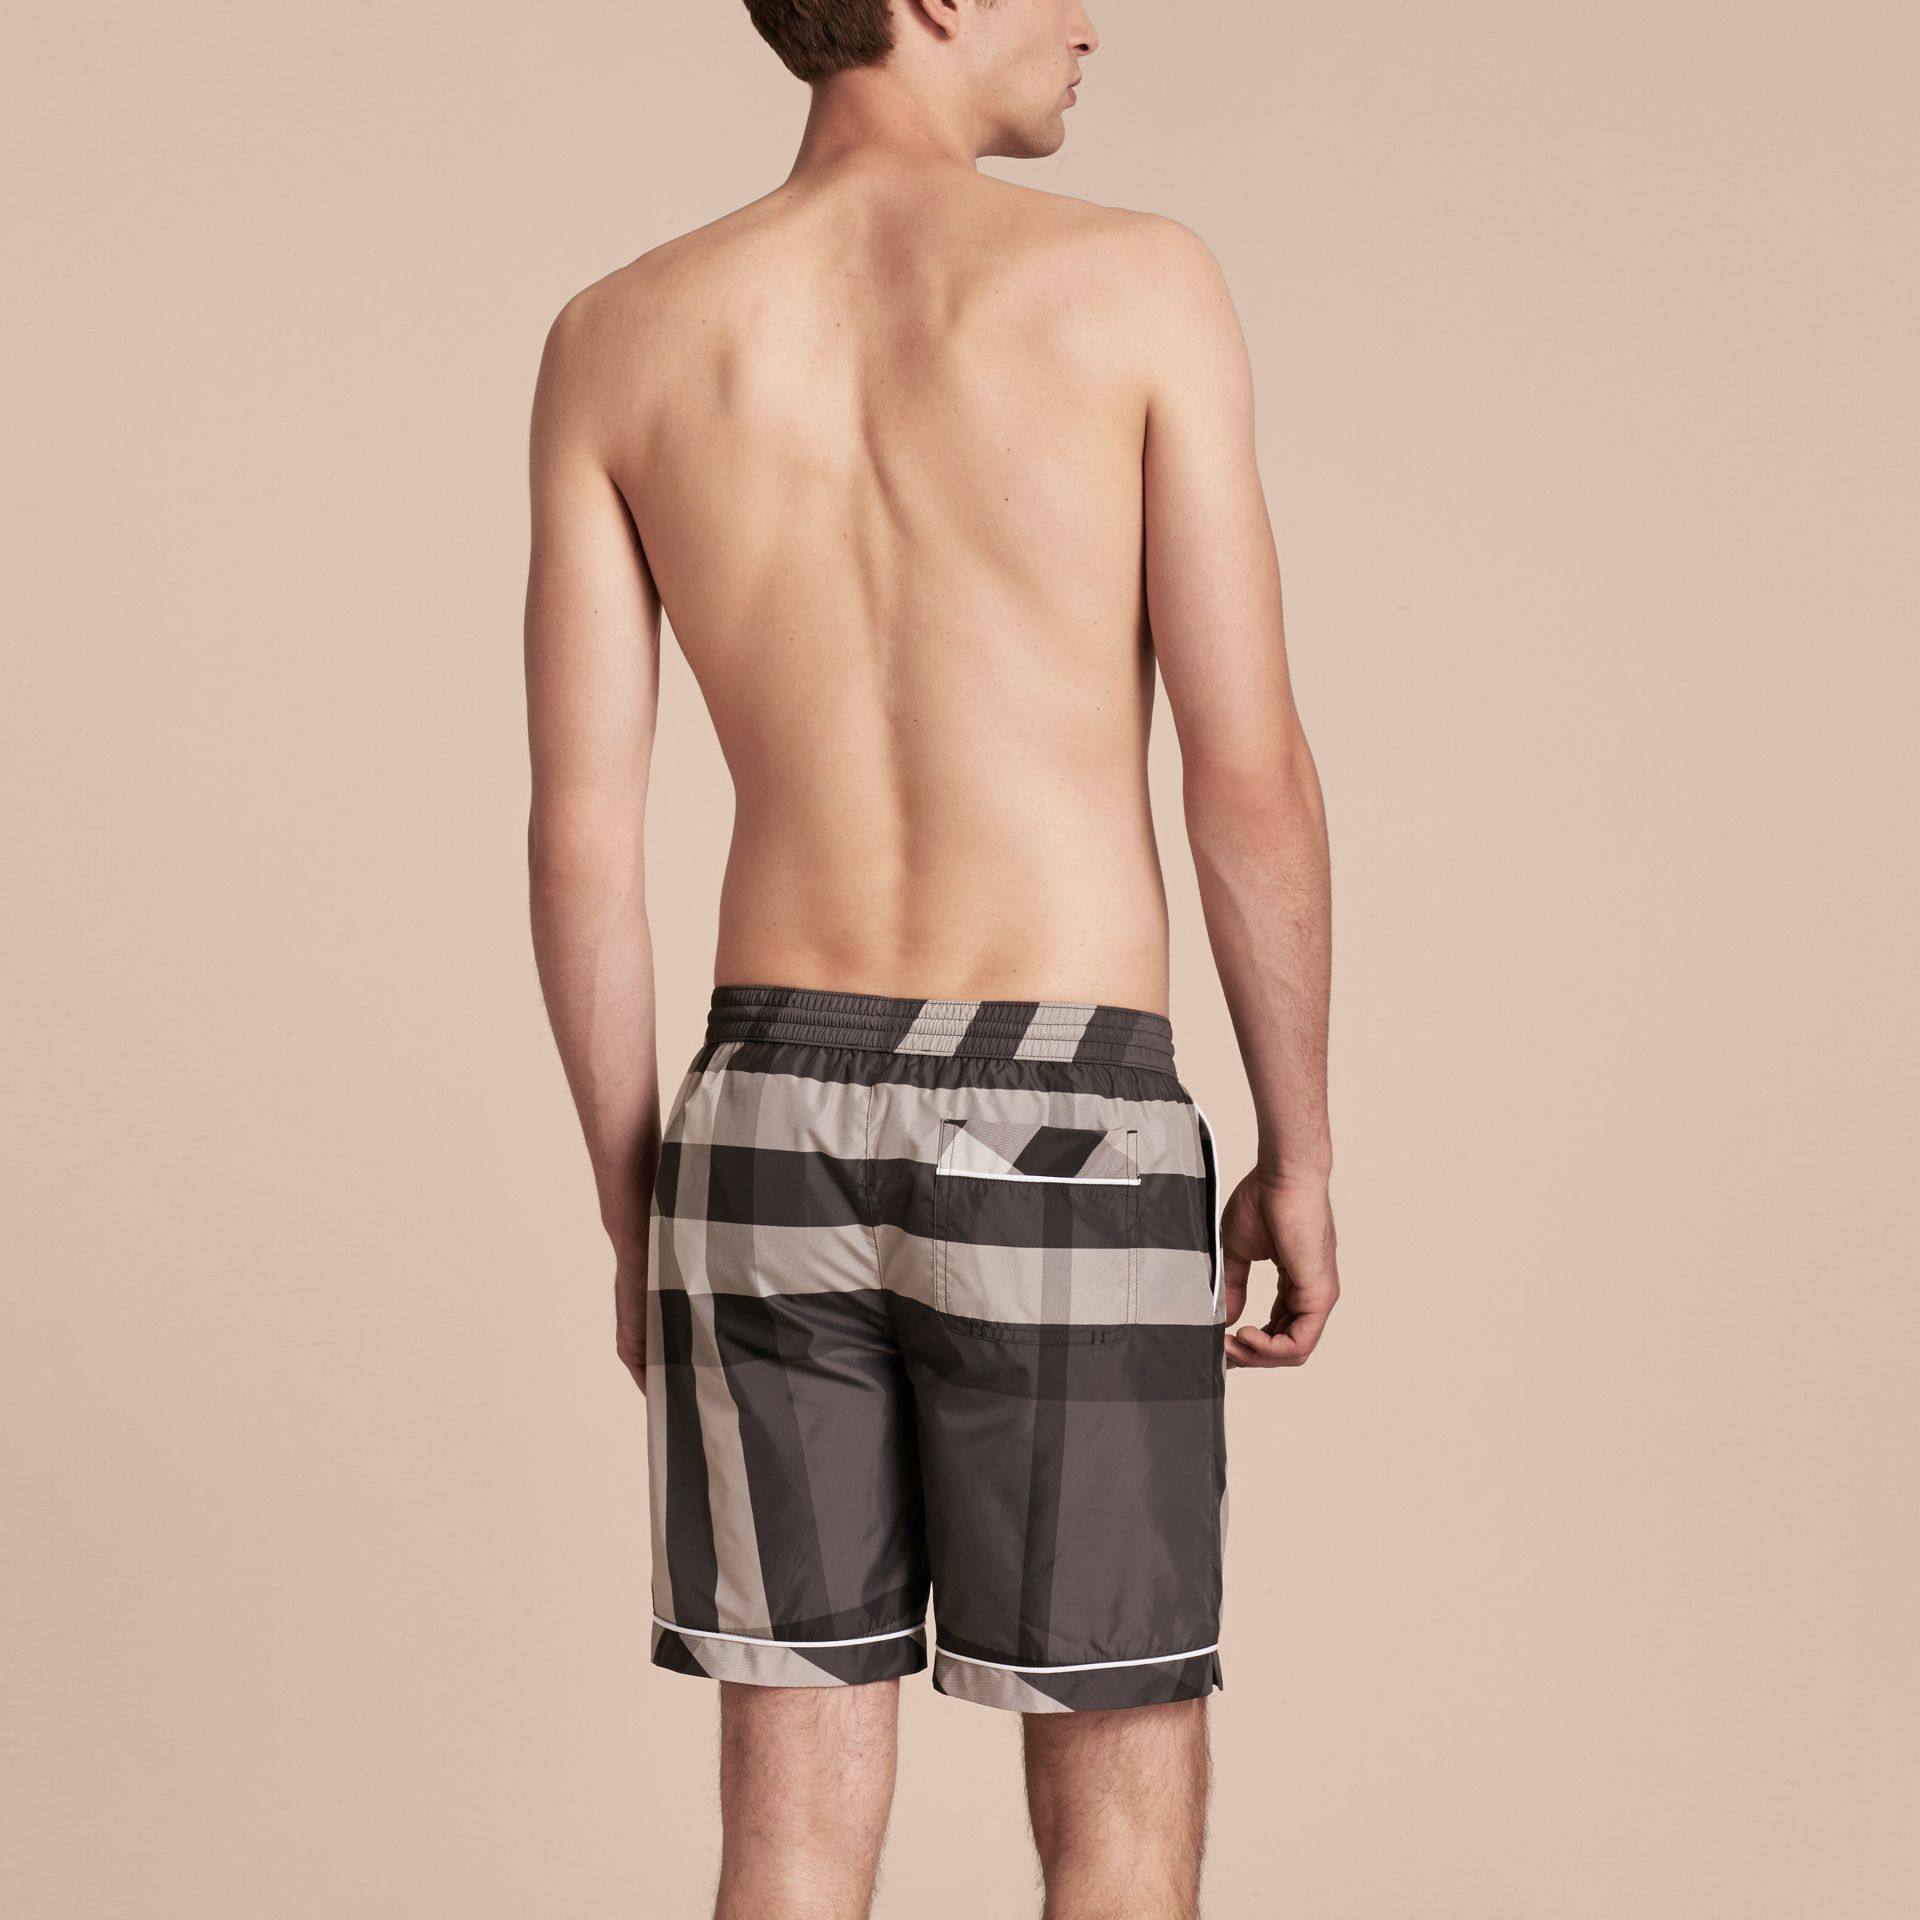 Charcoal Check Print Swim Shorts with Piping Detail Charcoal - gallery image 3